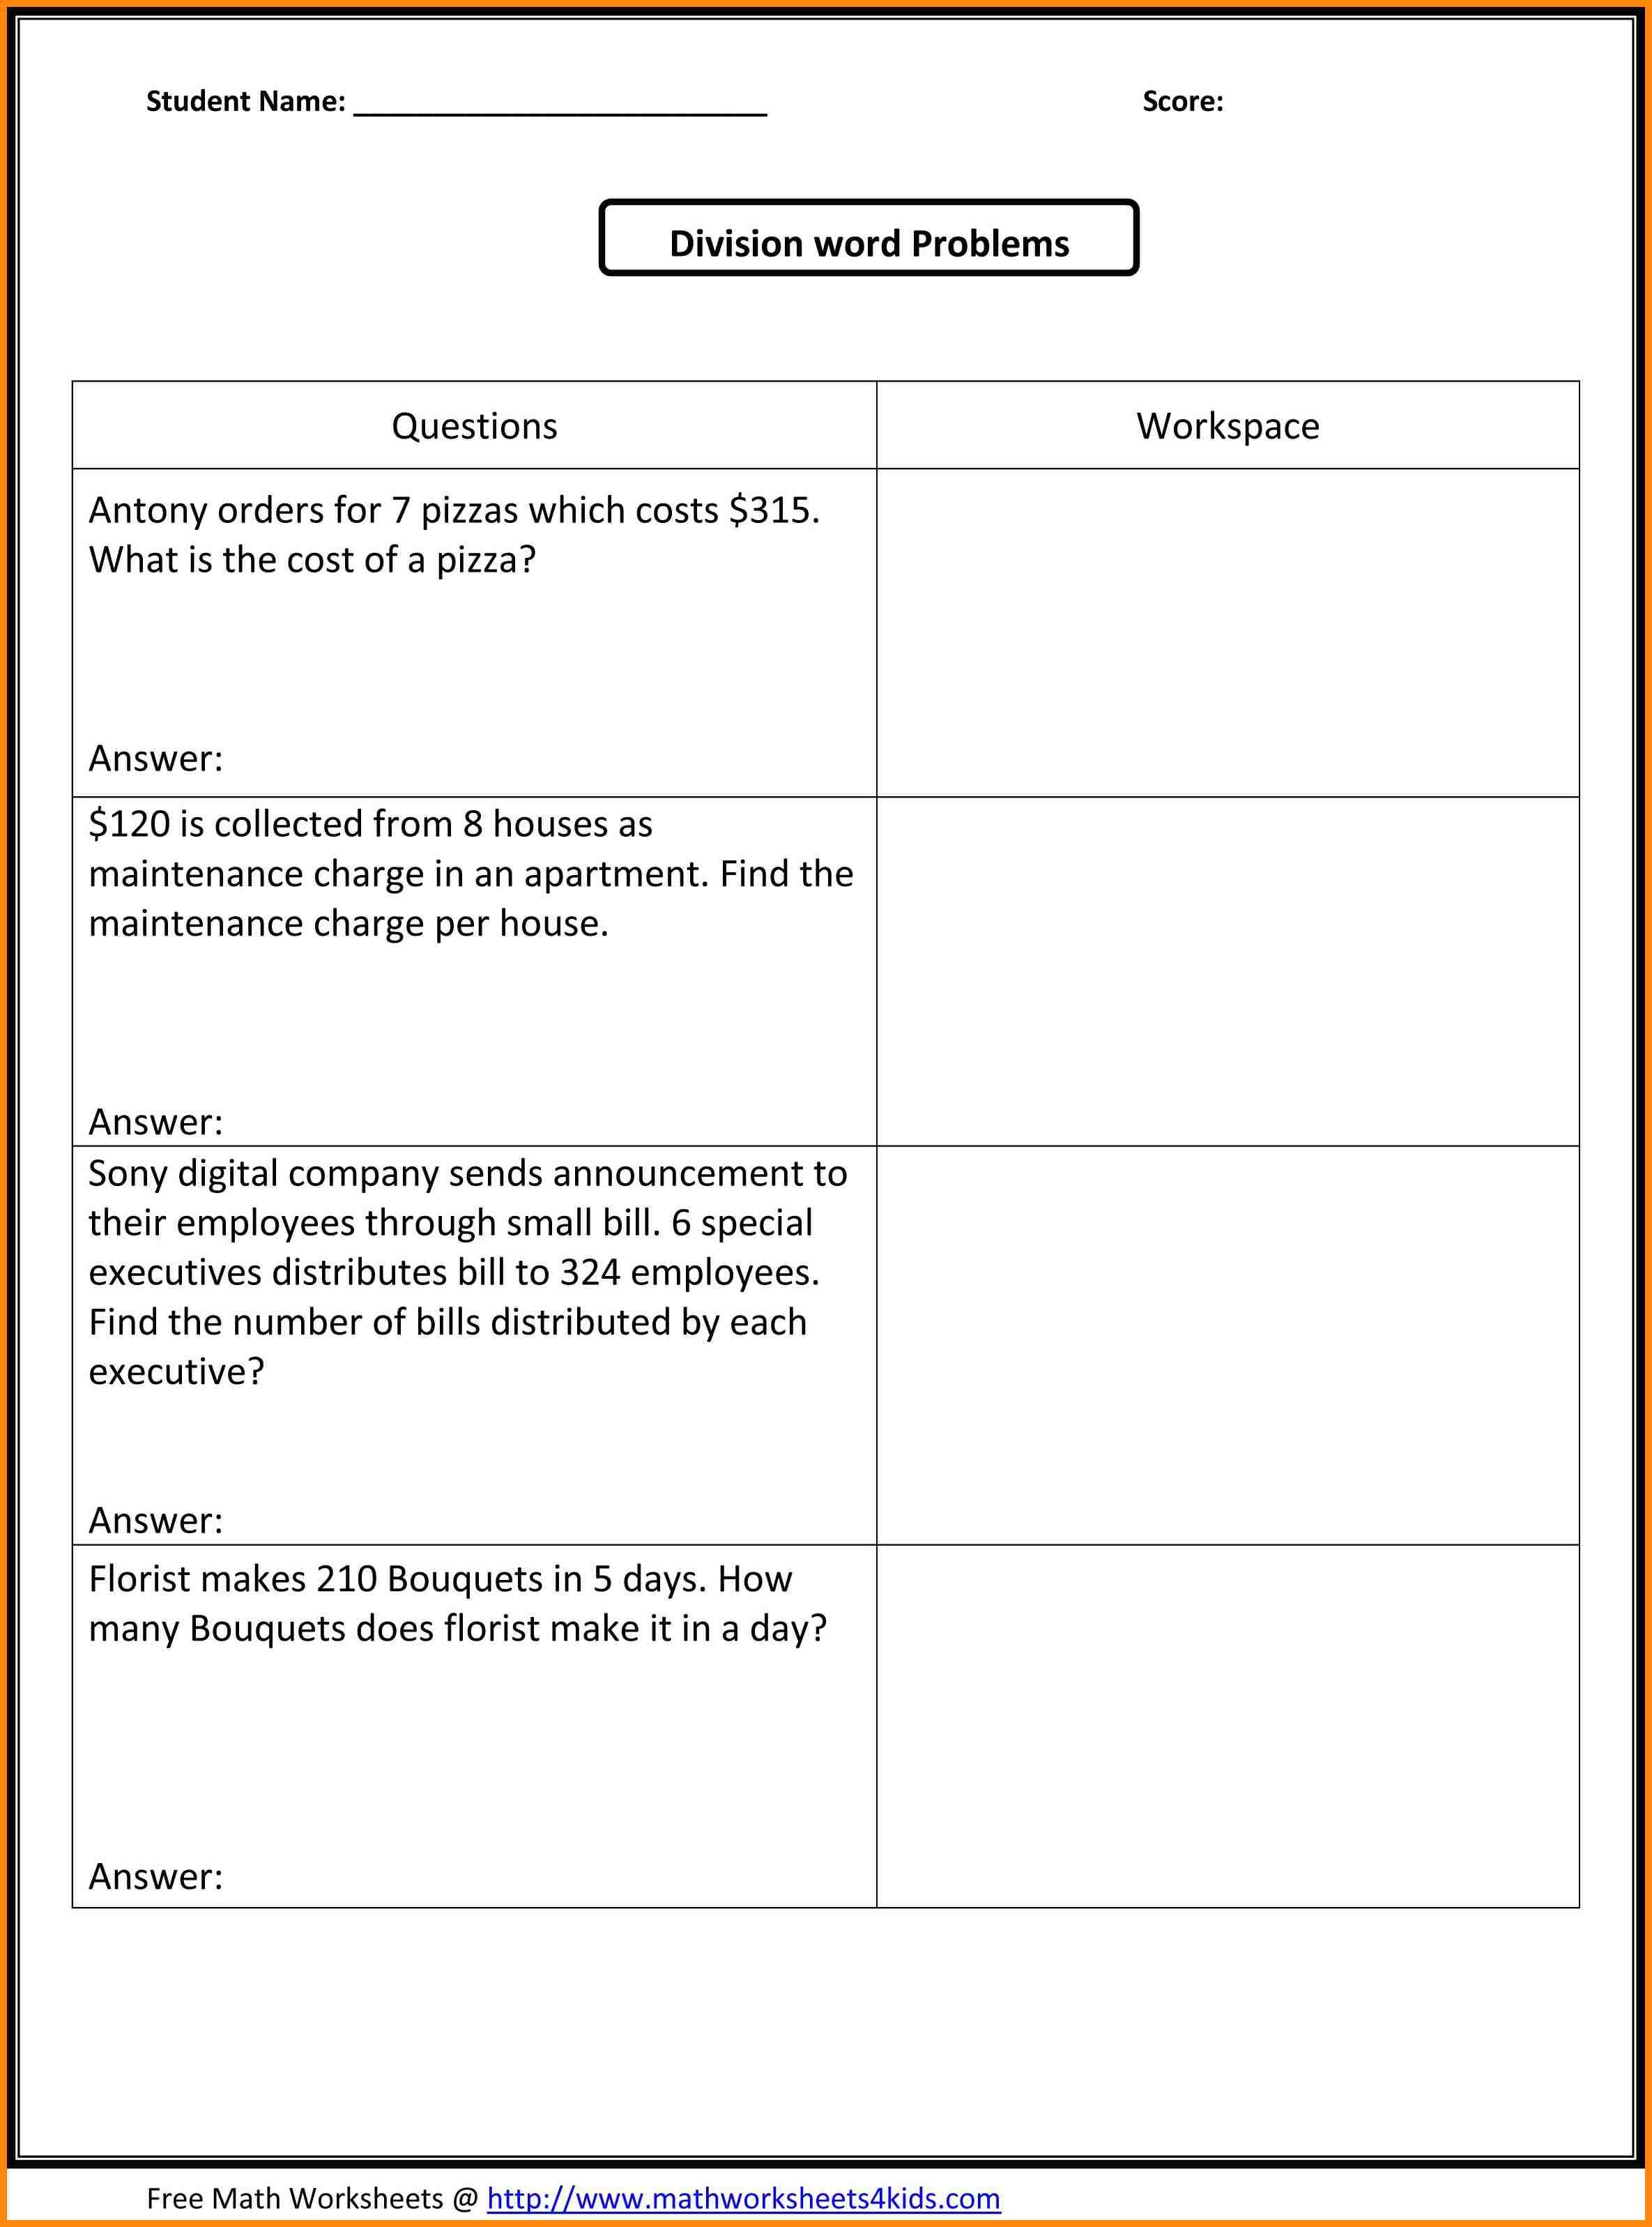 10 5th Grade Math Word Problems Bunch Ideas Of 6th Grade